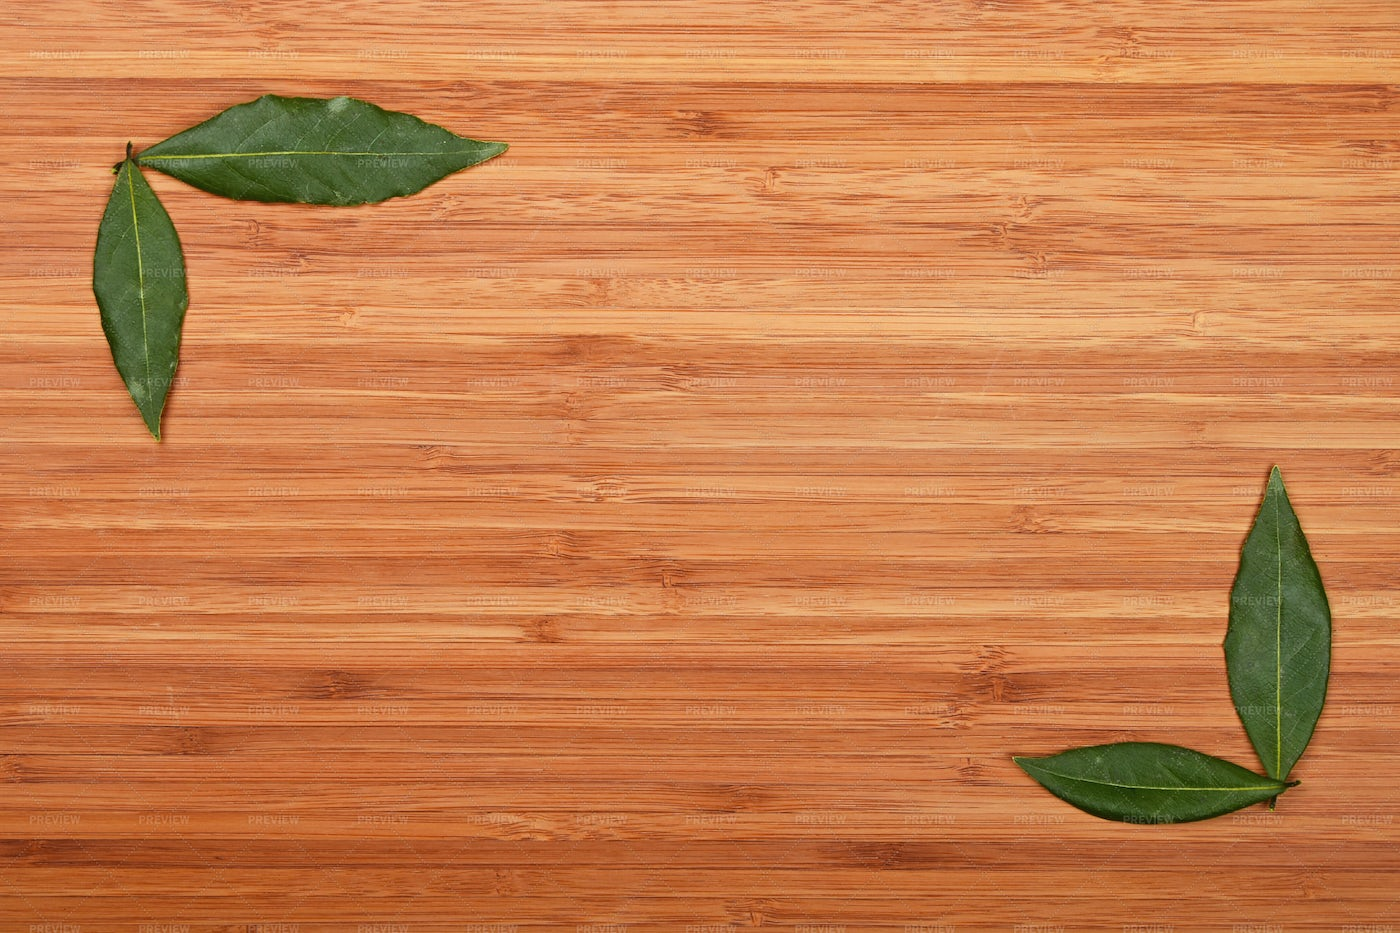 Bay Leaves On Cutting Board: Stock Photos